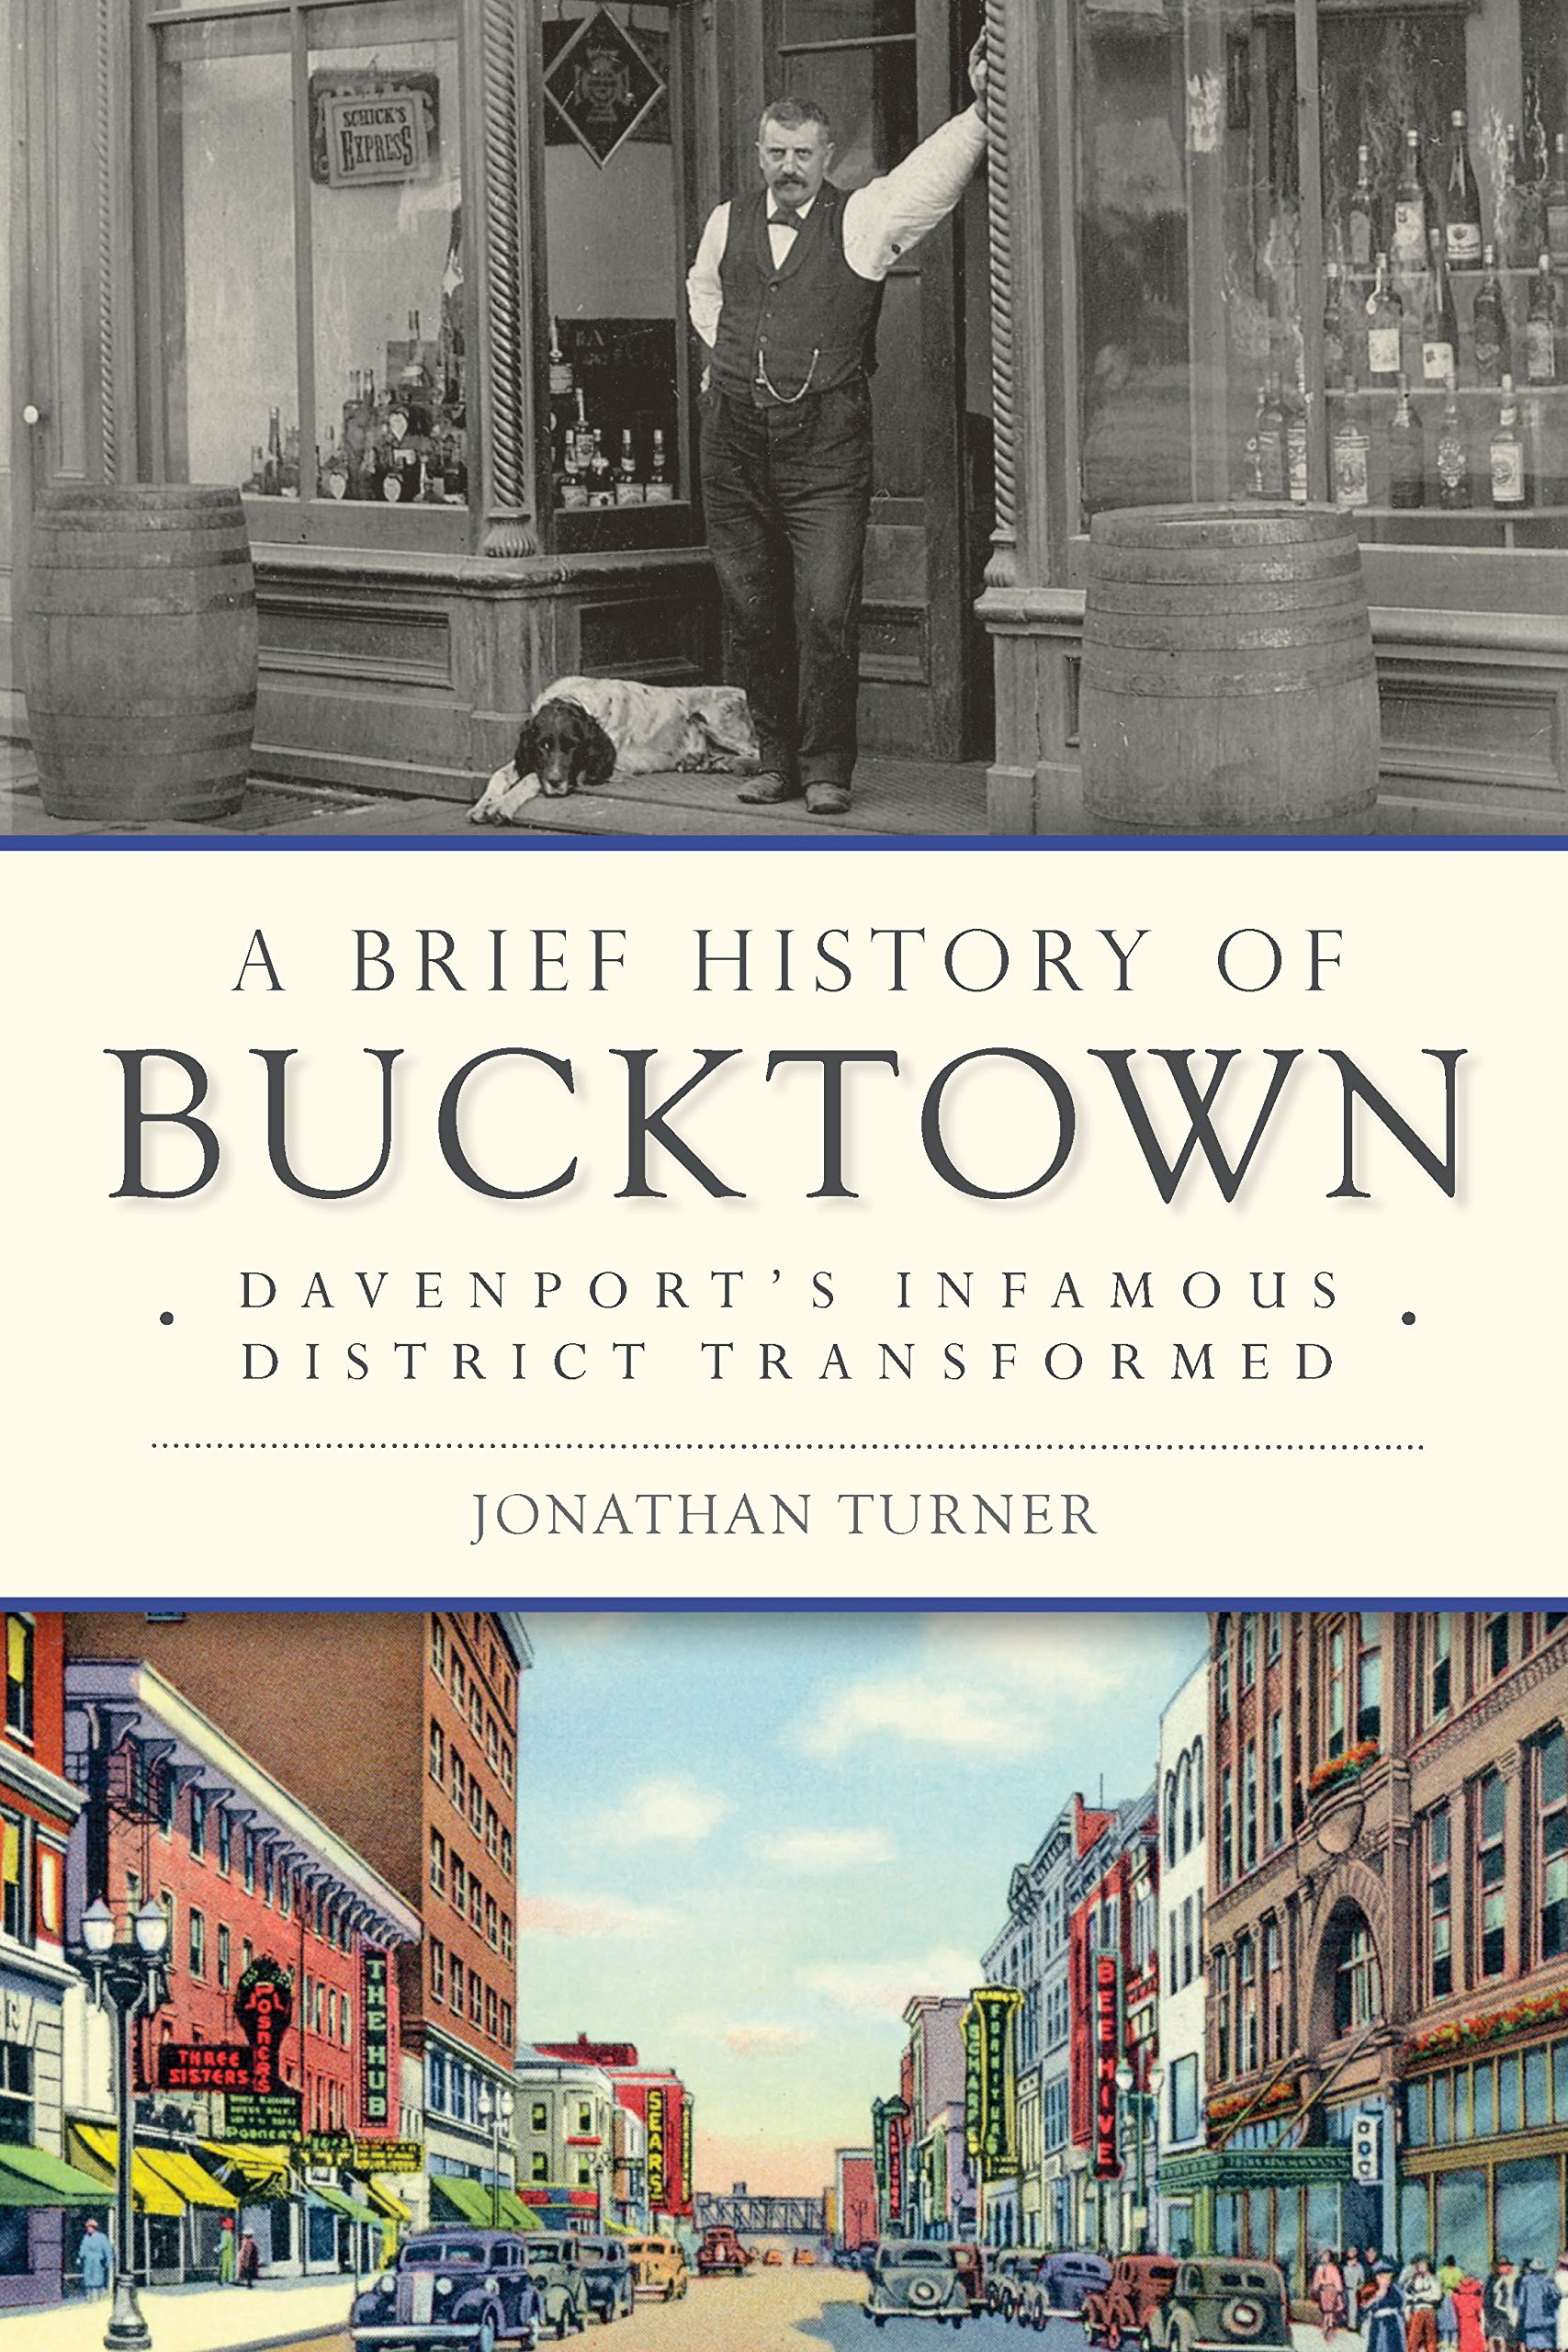 Image OfA Brief History Of Bucktown: Davenport's Infamous District Transformed (English Edition)